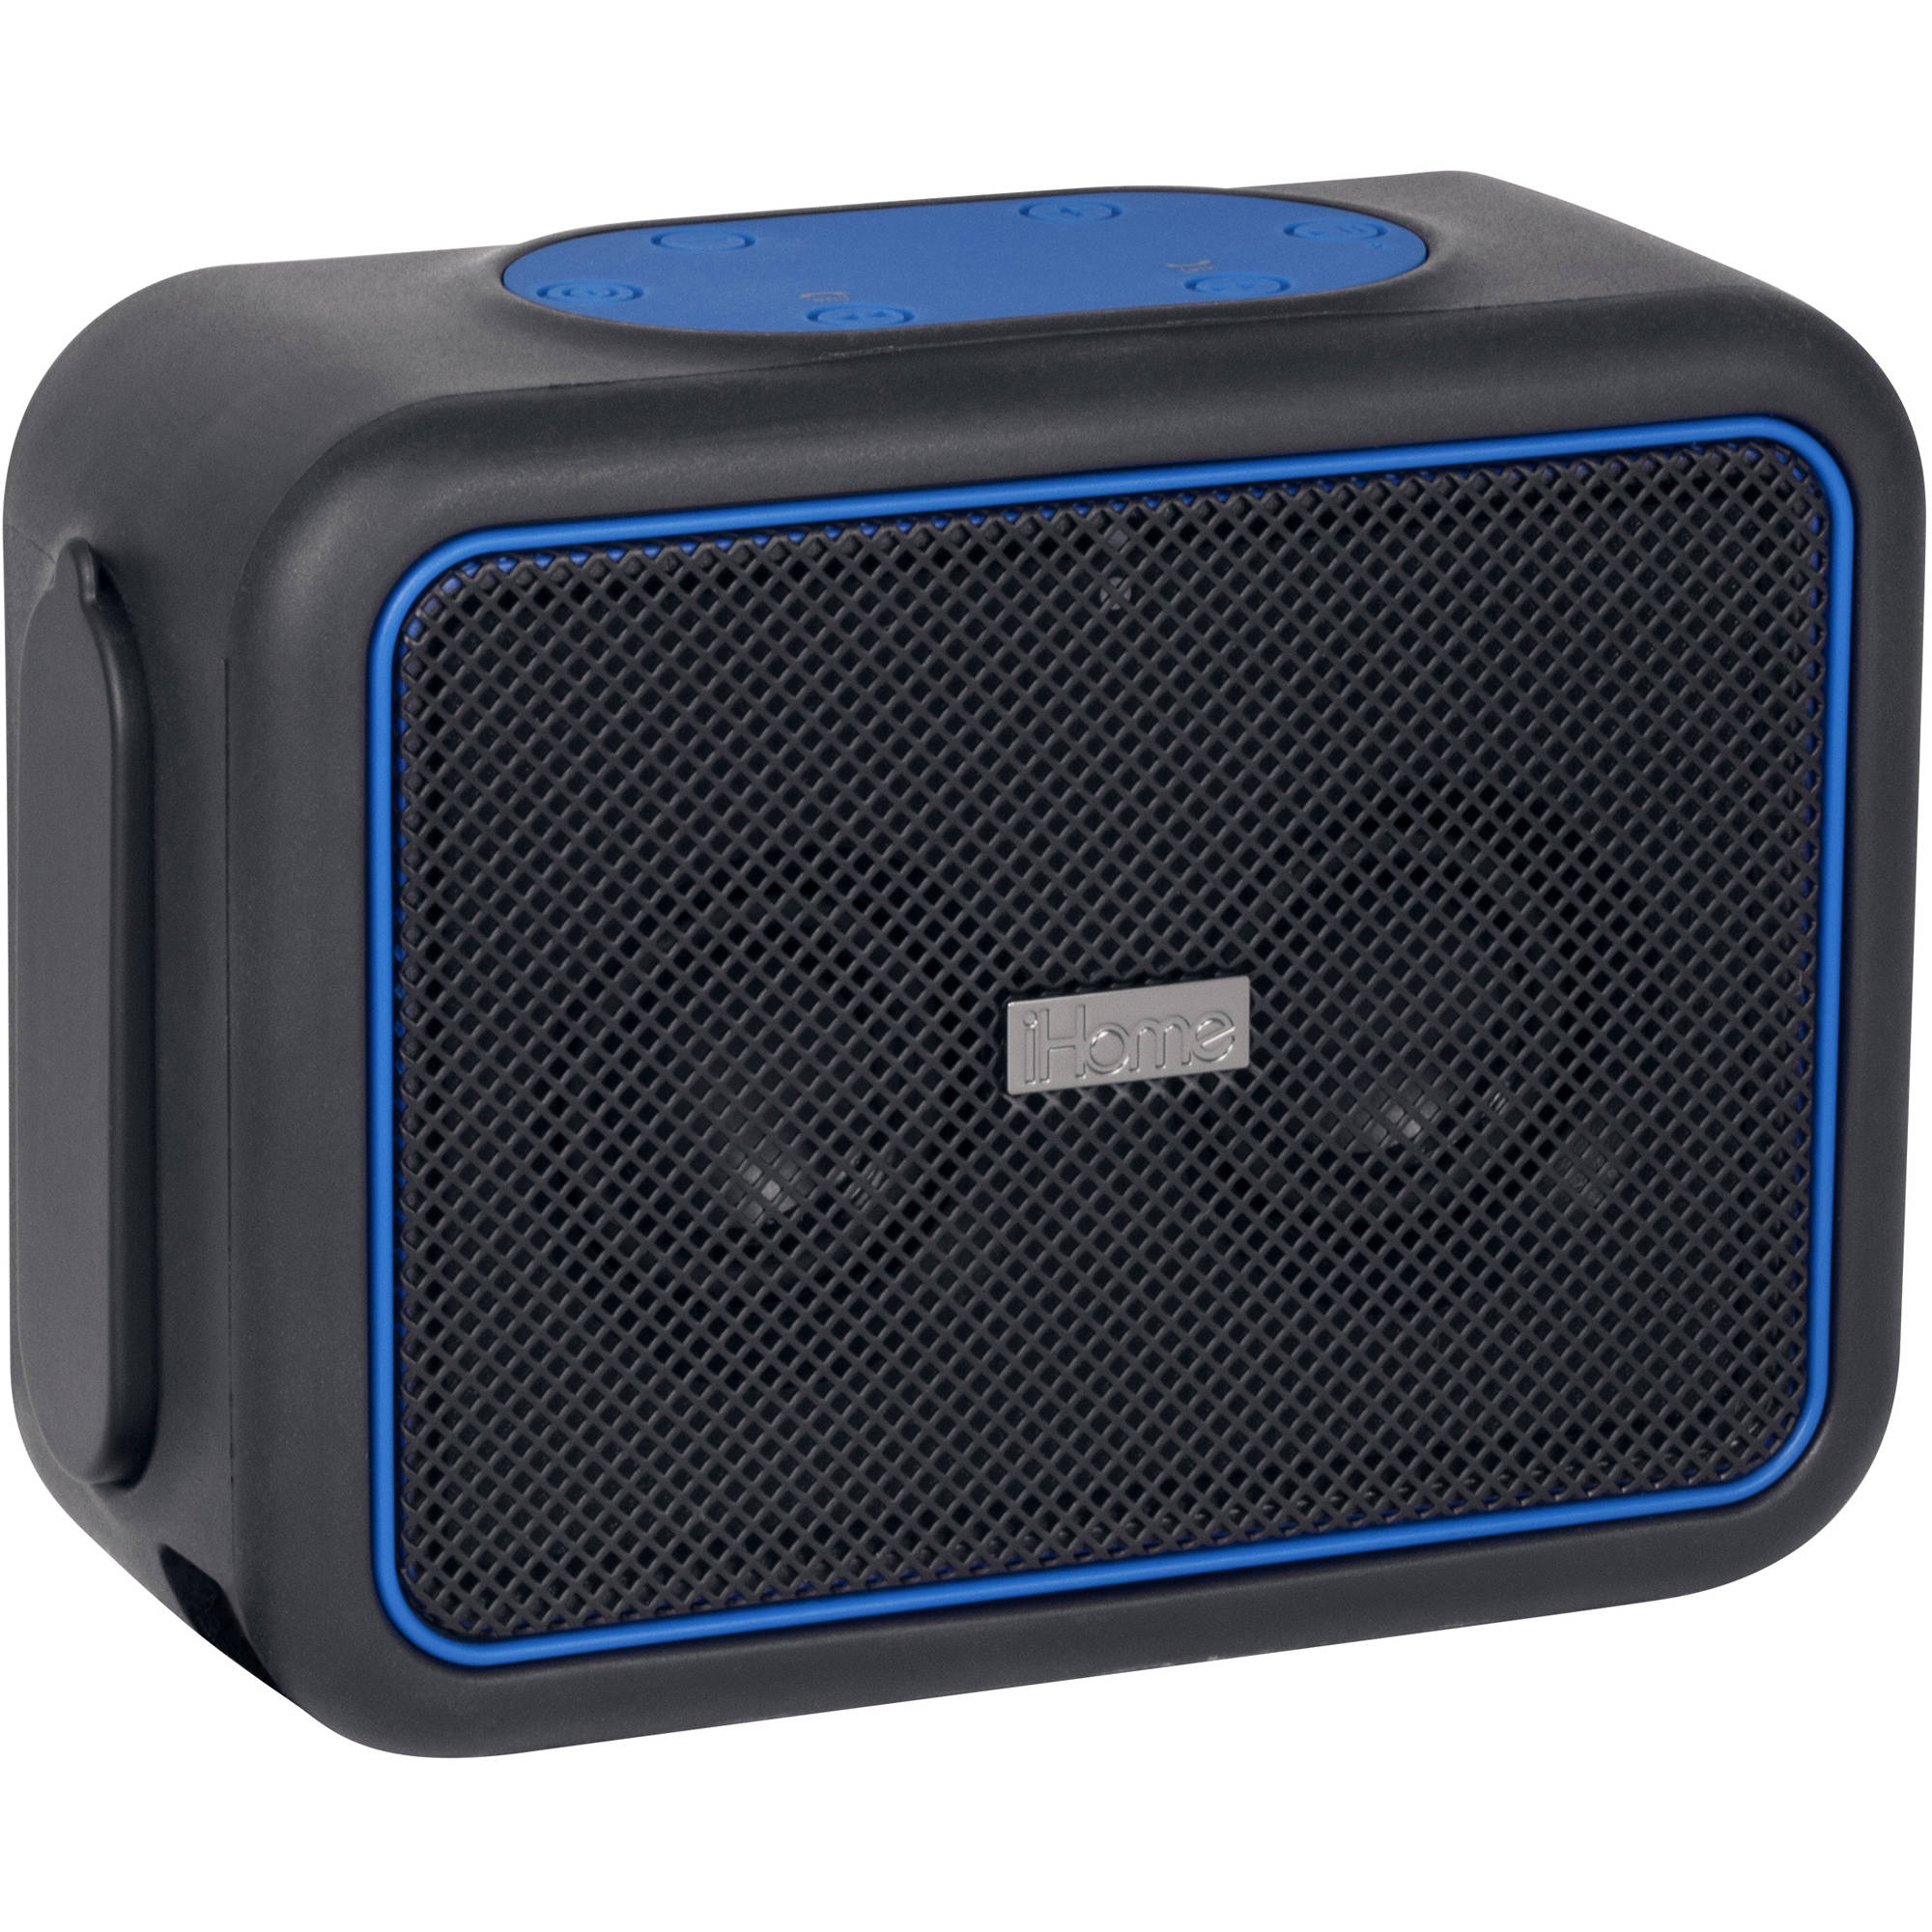 ihome ibt35 ruggedized bluetooth speaker ibt35blc b h photo